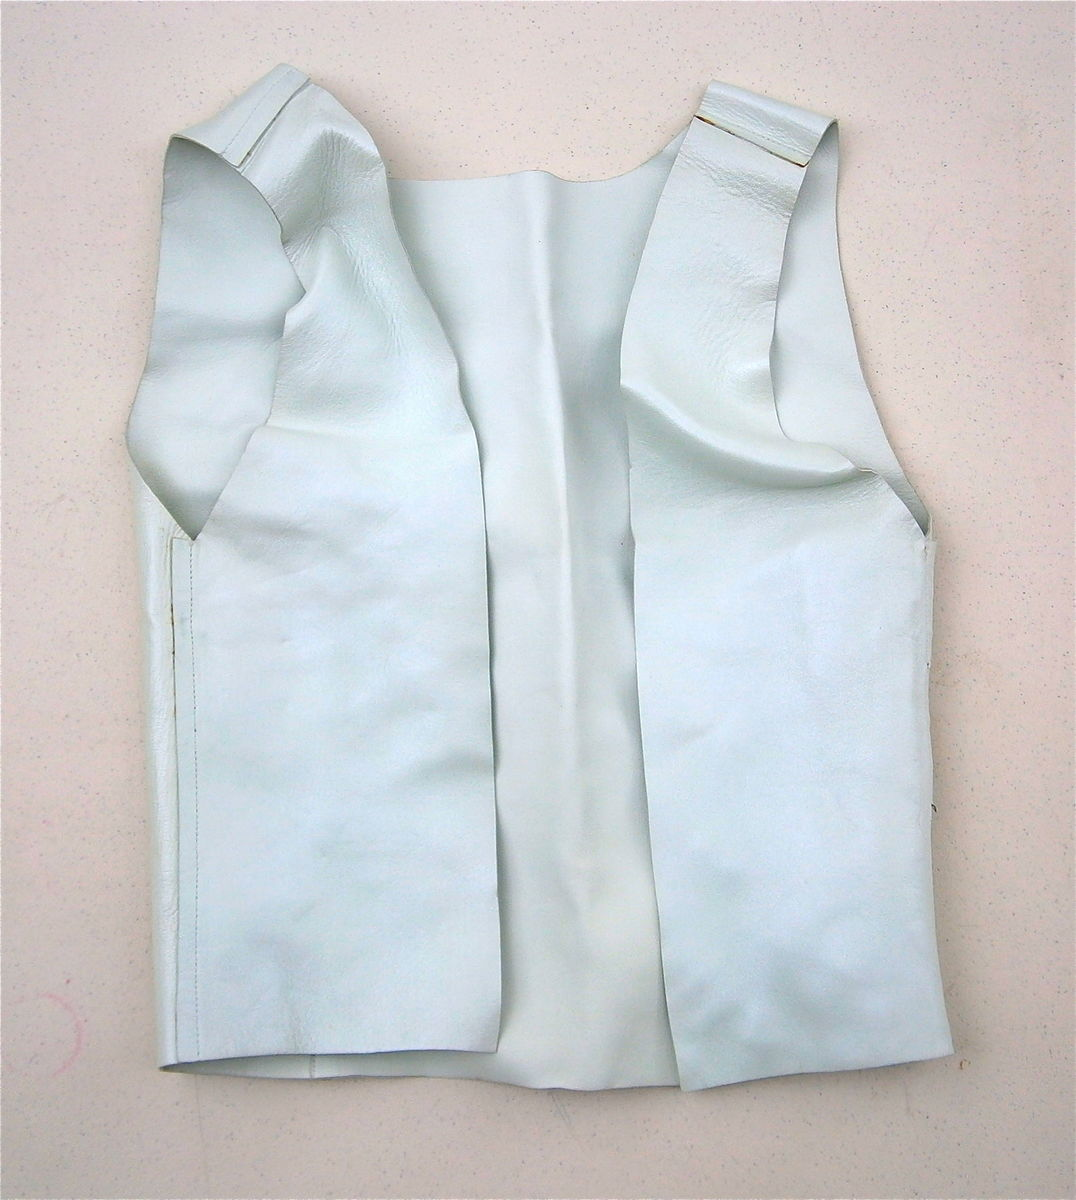 Vintage Light Mint Green Vest Leather Outerwear Bolero Chaleco Waist Coat Boho Hippie Hipster Plain Raw Edge Sleeveless Jacket Small Medium - product images  of